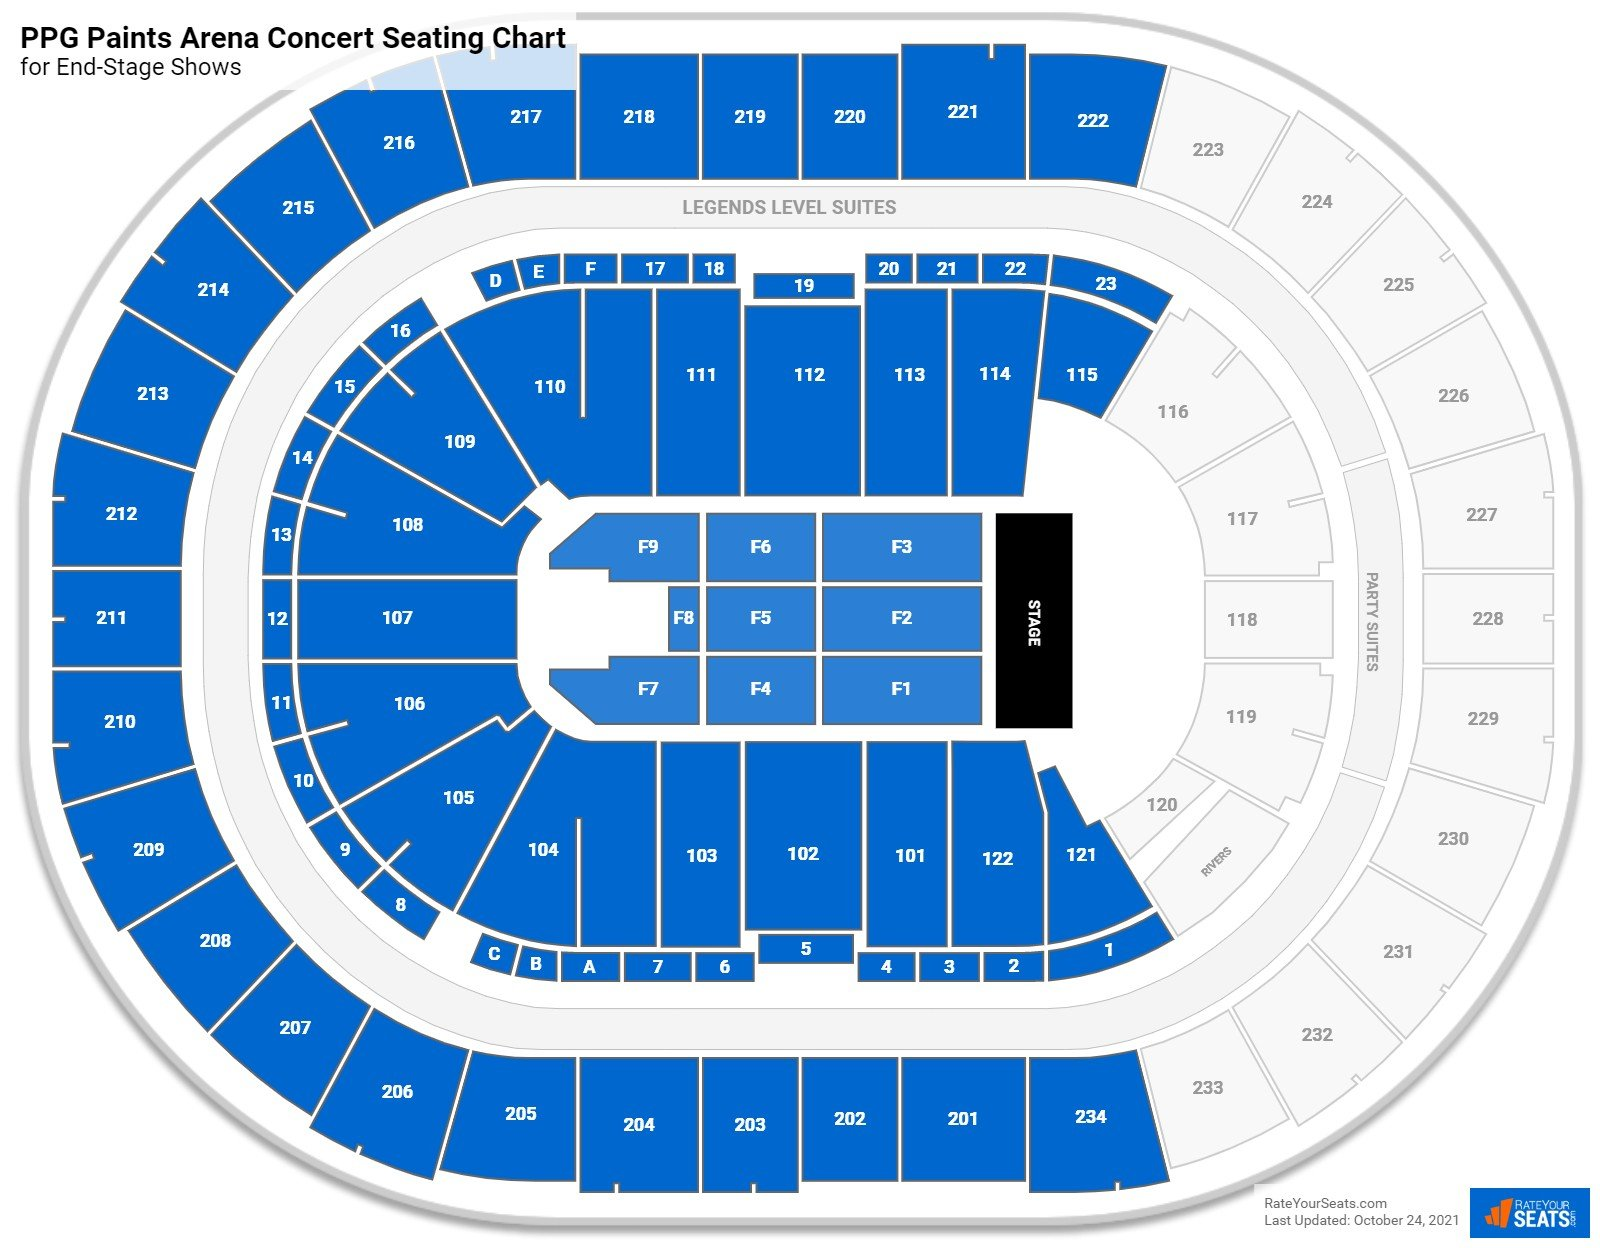 PPG Paints Arena Seating Chart for Concerts